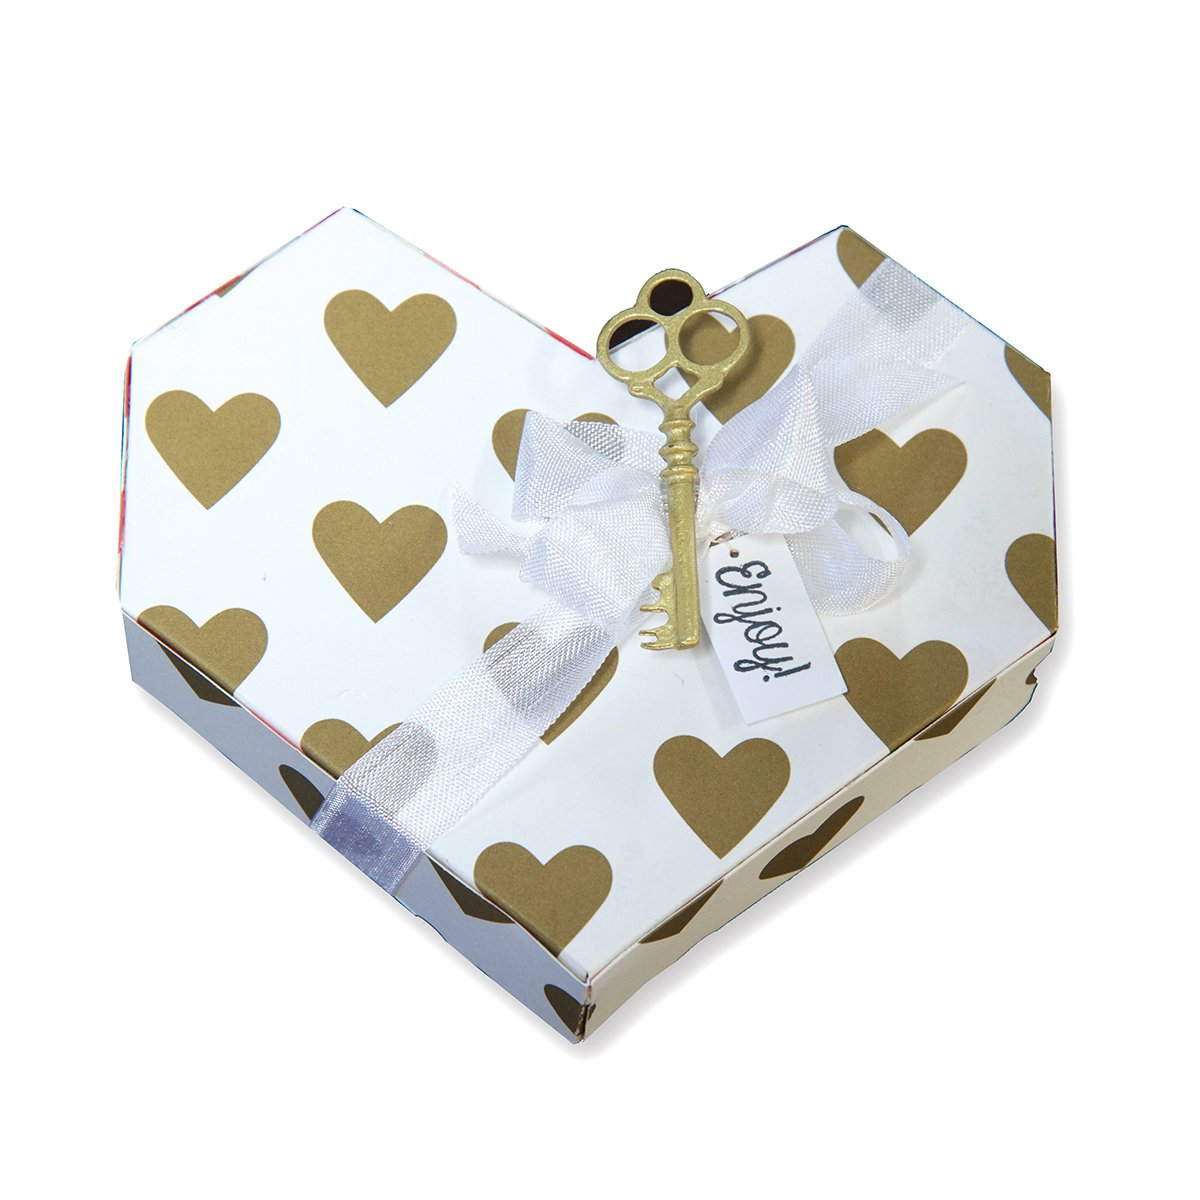 Amazon com: Spellbinders Geo-Heart Box Contour Steel Rule Die